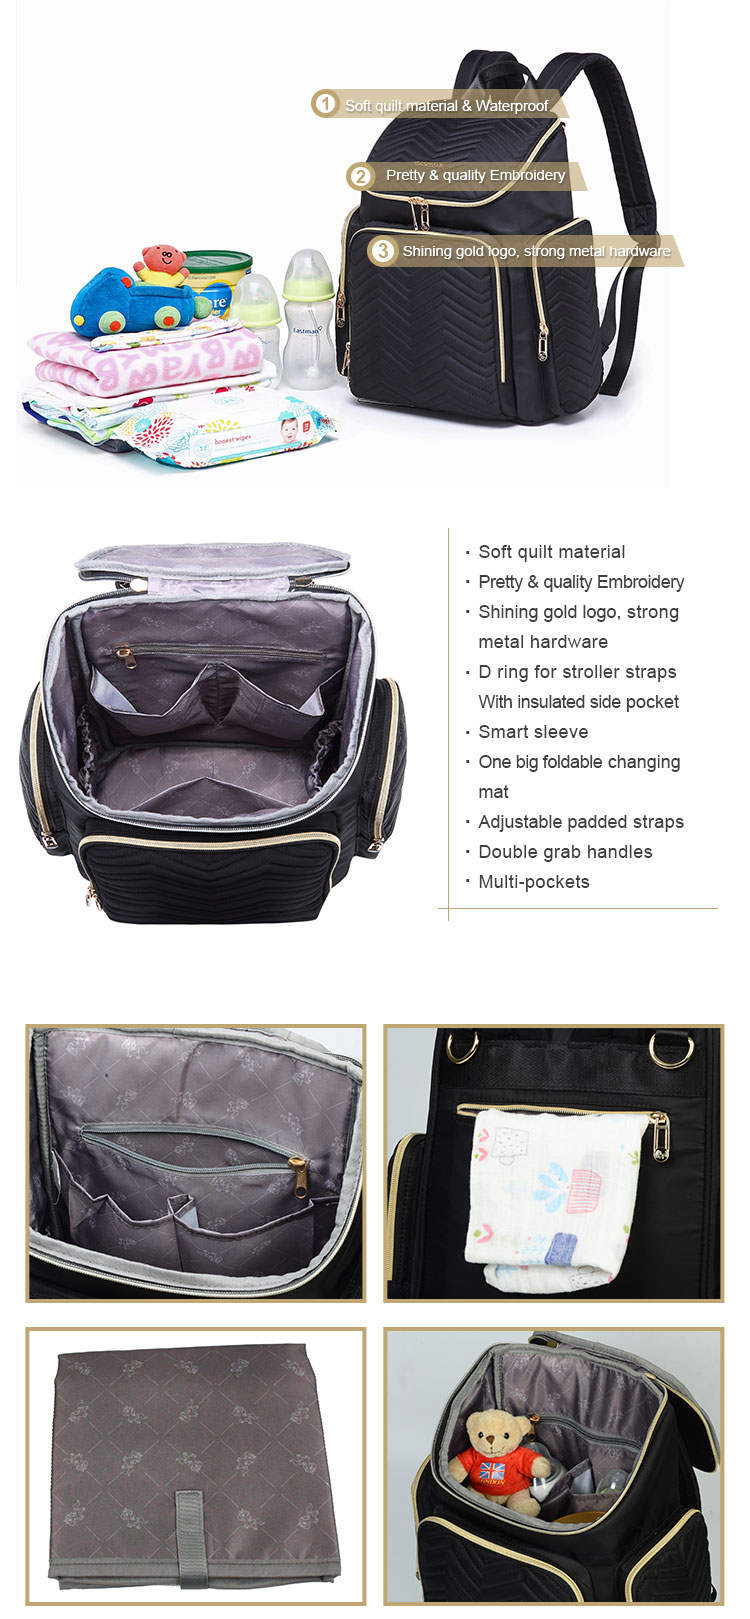 Multifunctional Large Diaper Backpack Fashion Quilted Maternity Ruck sack Black for Mums with Insulated Cooler Pockets